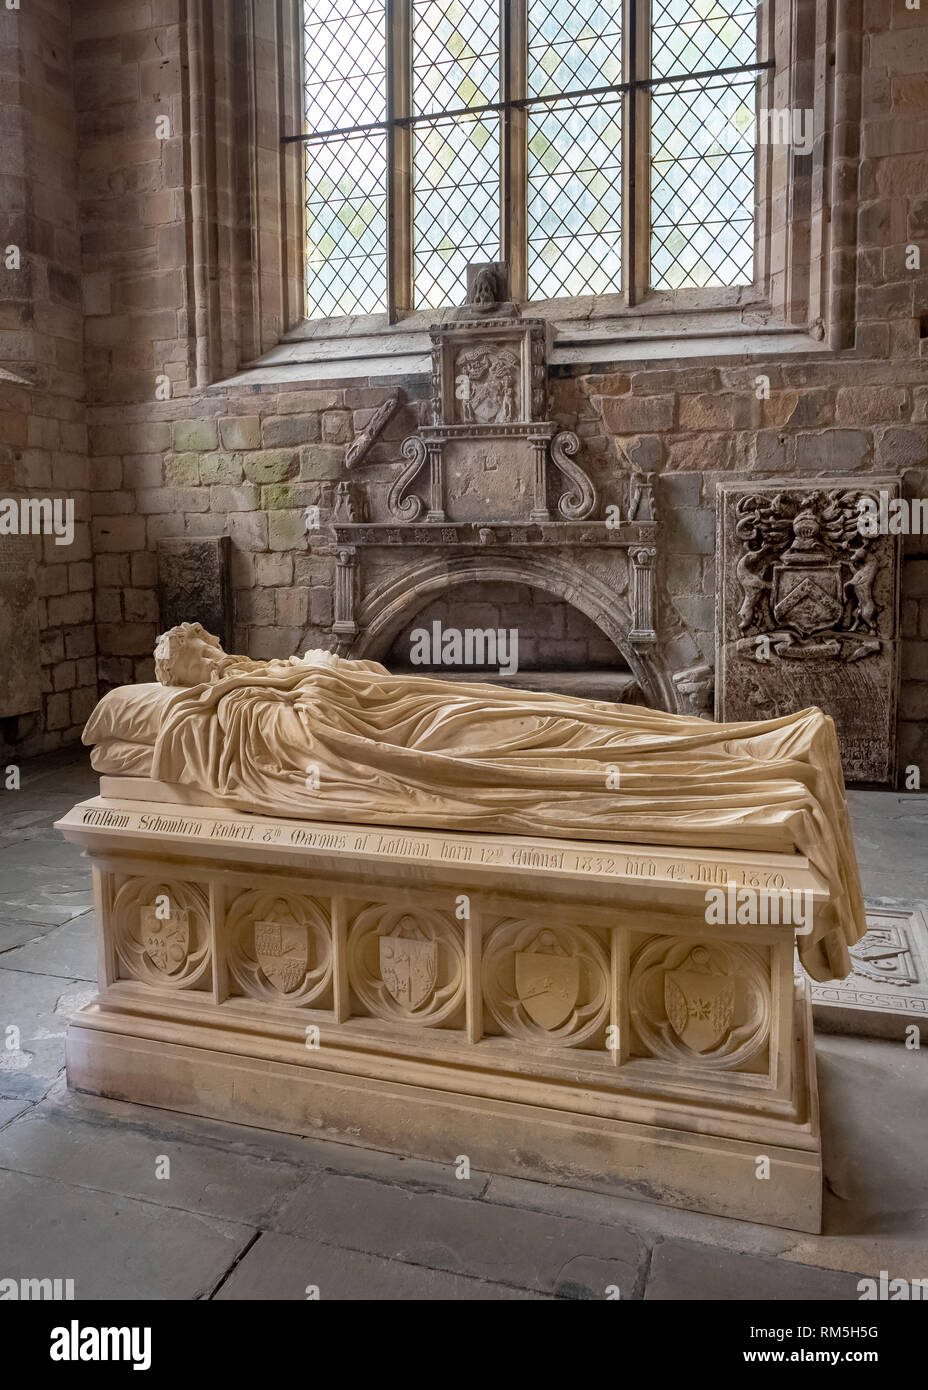 The tomb of the 8th Marquess of Lothian, Robert Kerr, who died in 1870, Jedburgh Abbey, Jedburgh, Scottish Borders - Stock Image